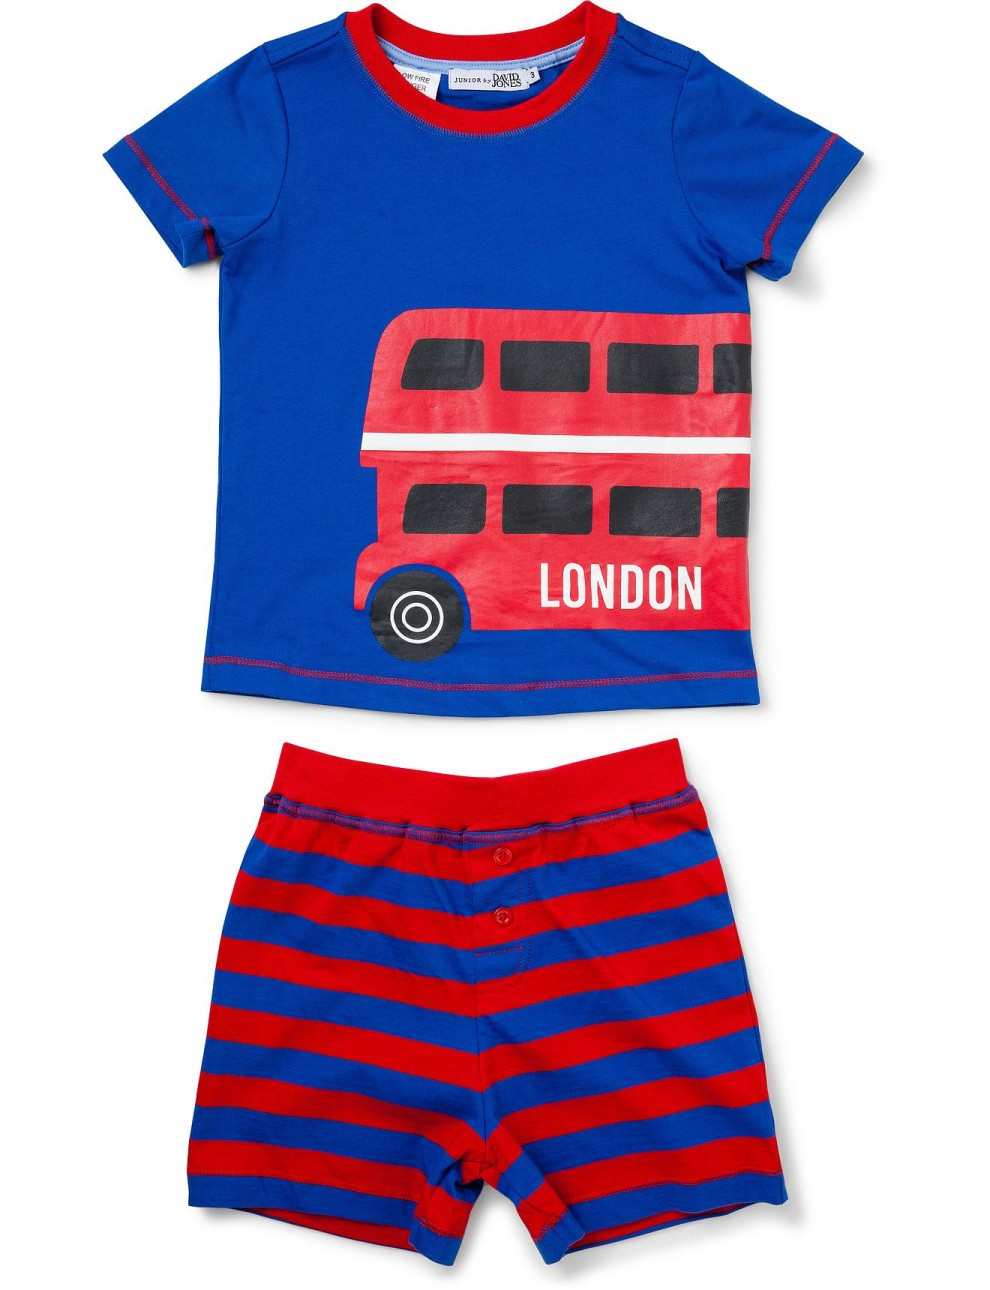 Blue And Red Printed Short Sleeve Nightwear